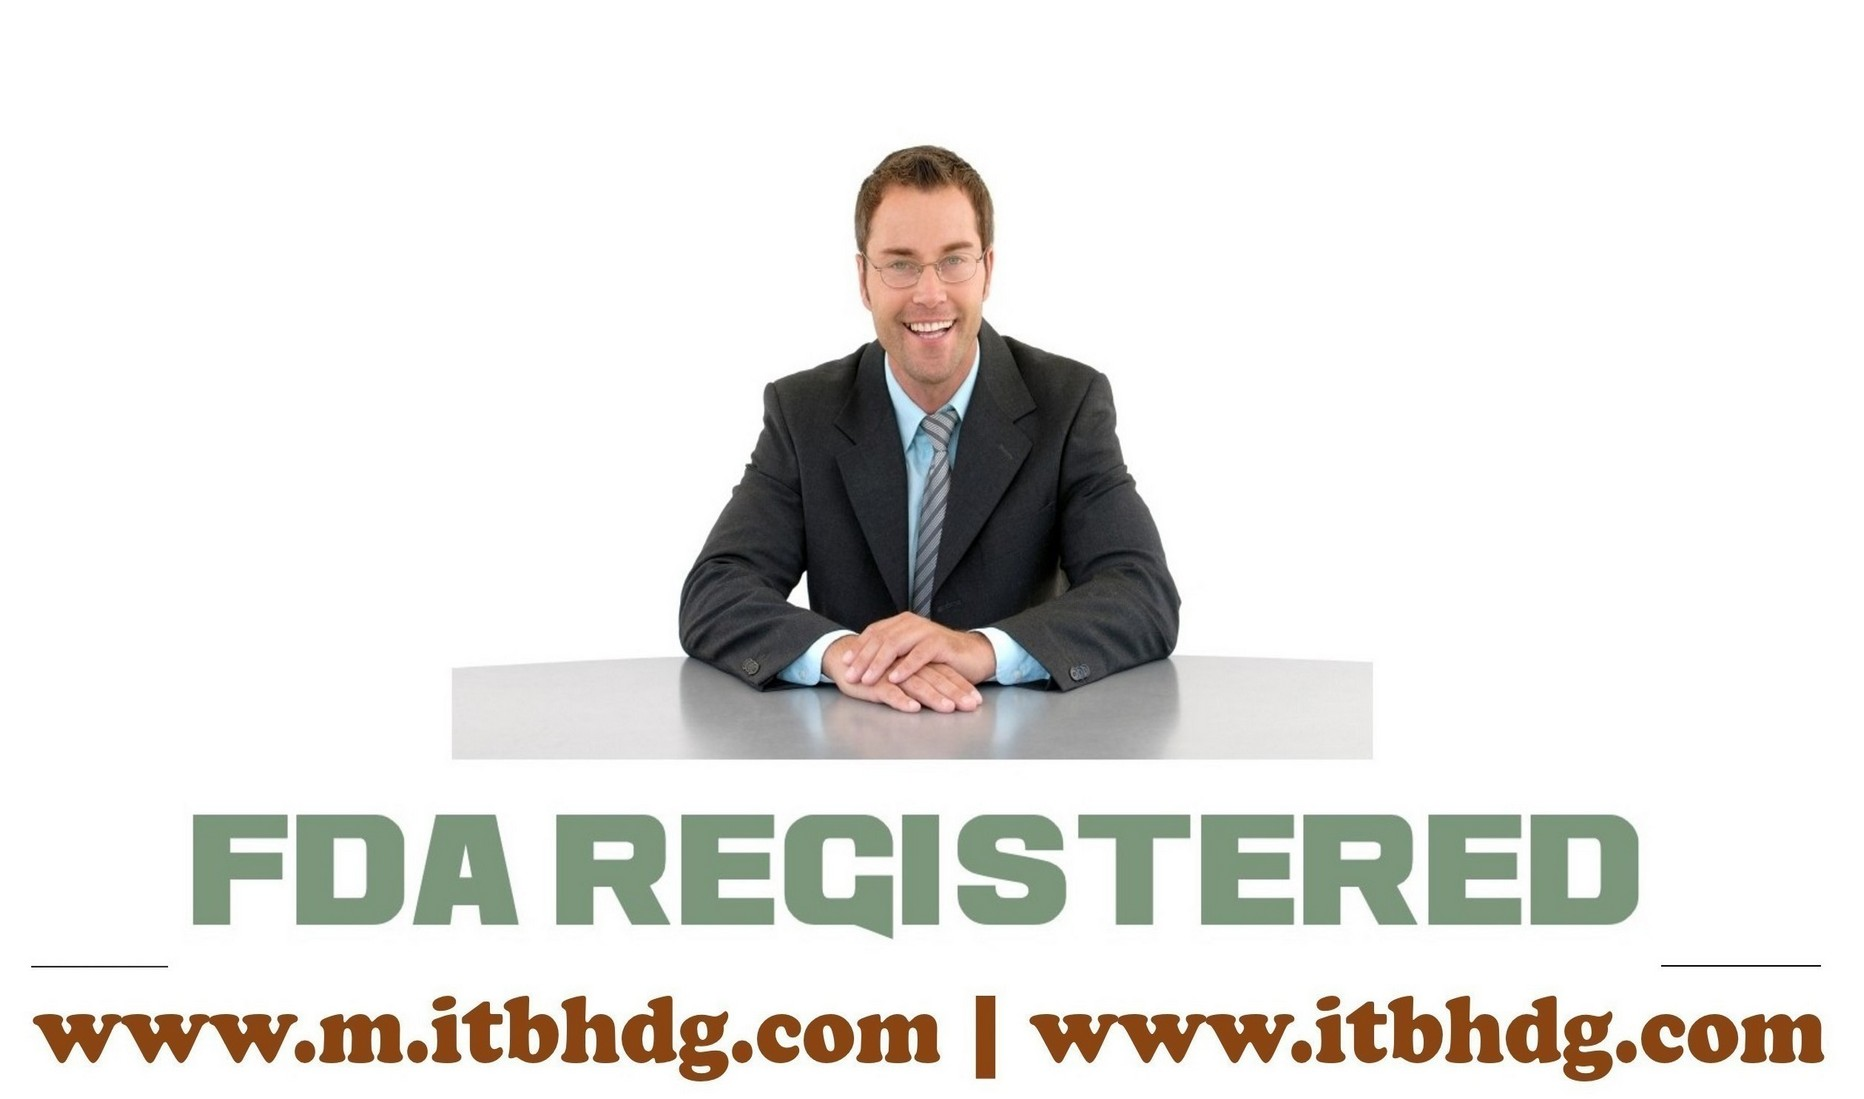 Contact ITB HOLDINGS LLC at T : +1 855 510 2240 | T : +1 855 389 7344 | T : +44 800 610 1577 | FDA REGISTRATION for 59 Dollars